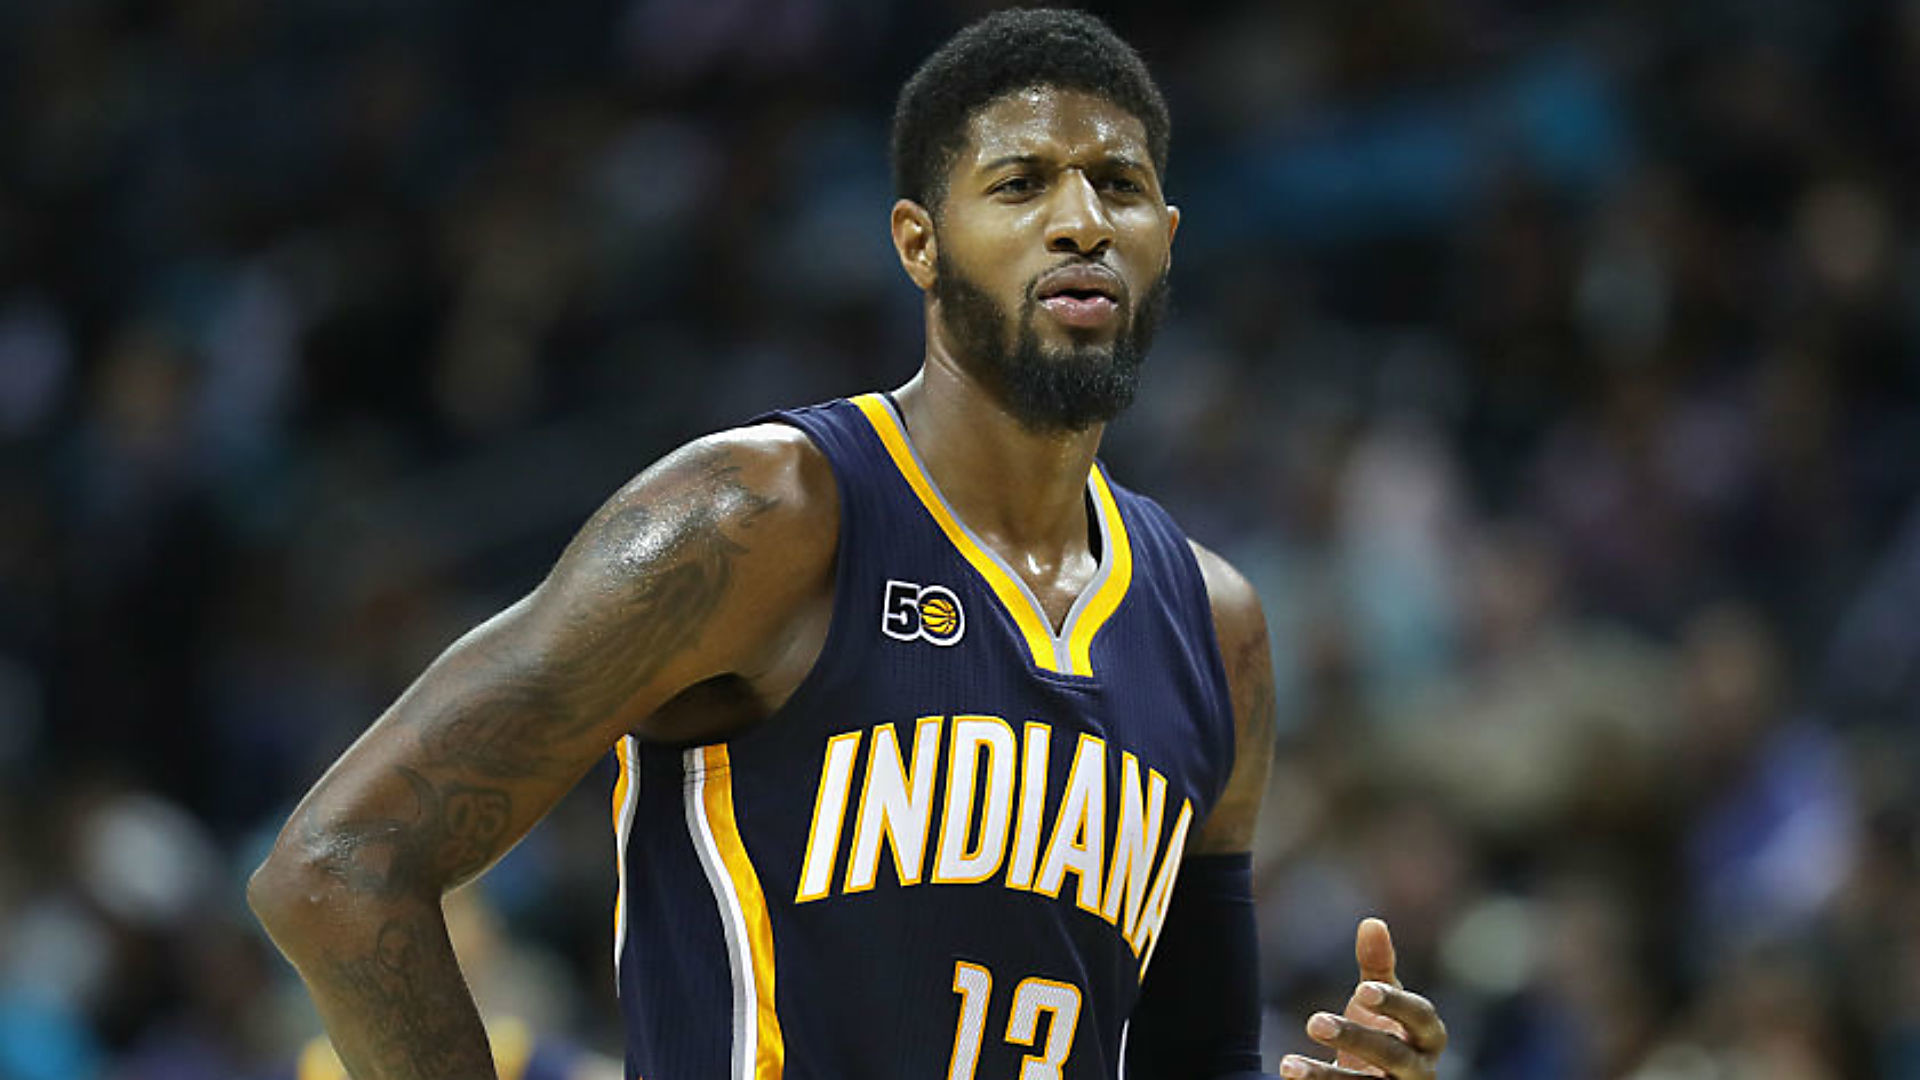 Report: Pacers evaluating market for star forward Paul George | NBA |  Sporting News